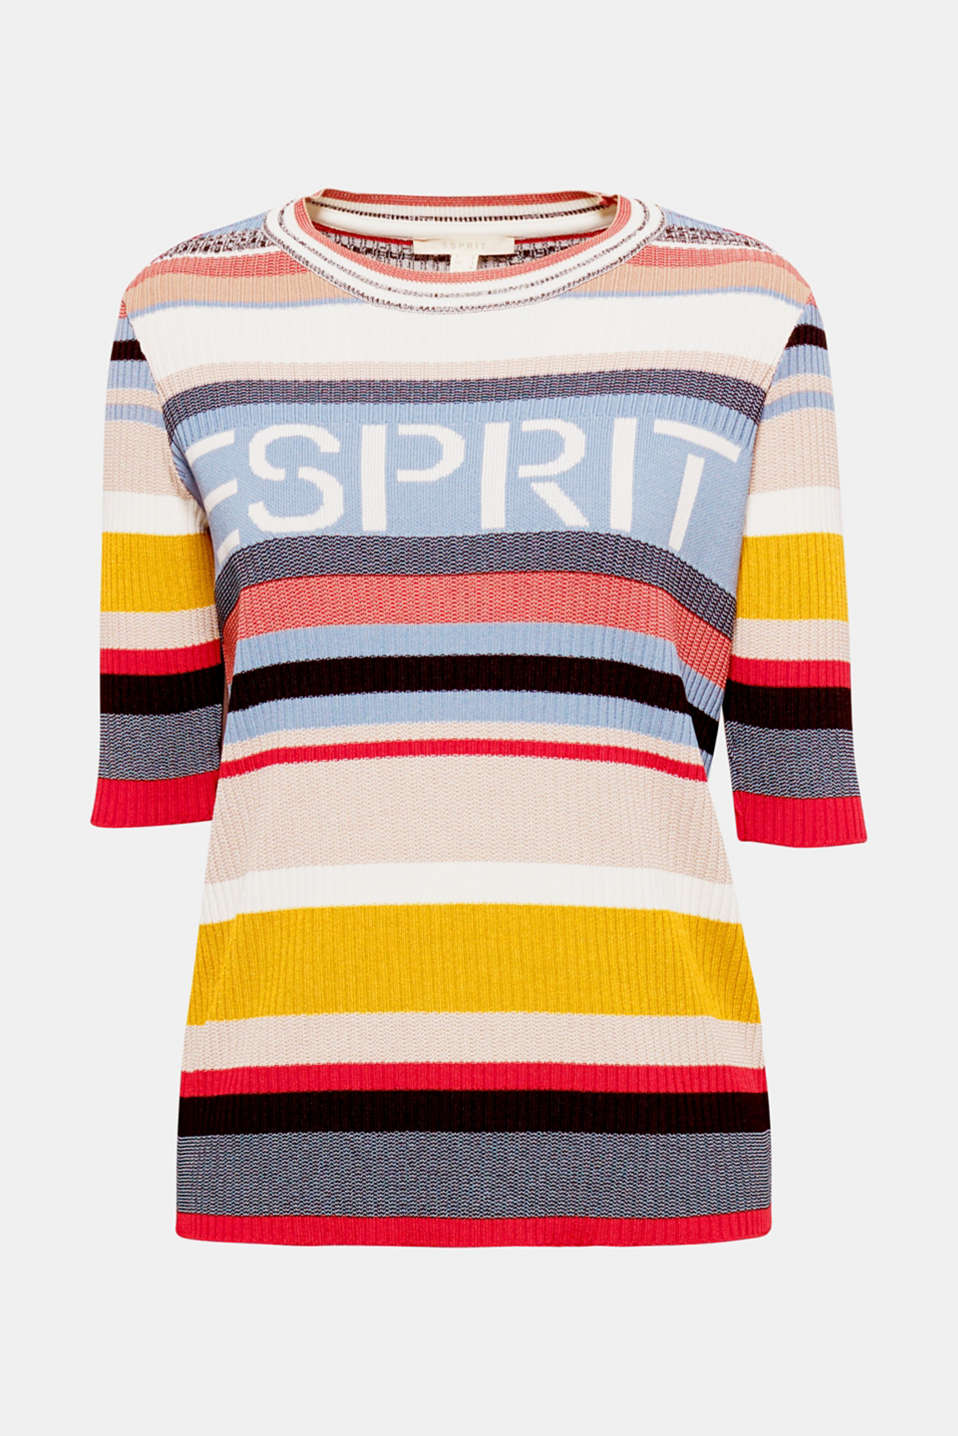 Colourful stripes, a classic logo and soft rib knit make this short-sleeved jumper a fancy eye-catcher with a trendy retro flair!